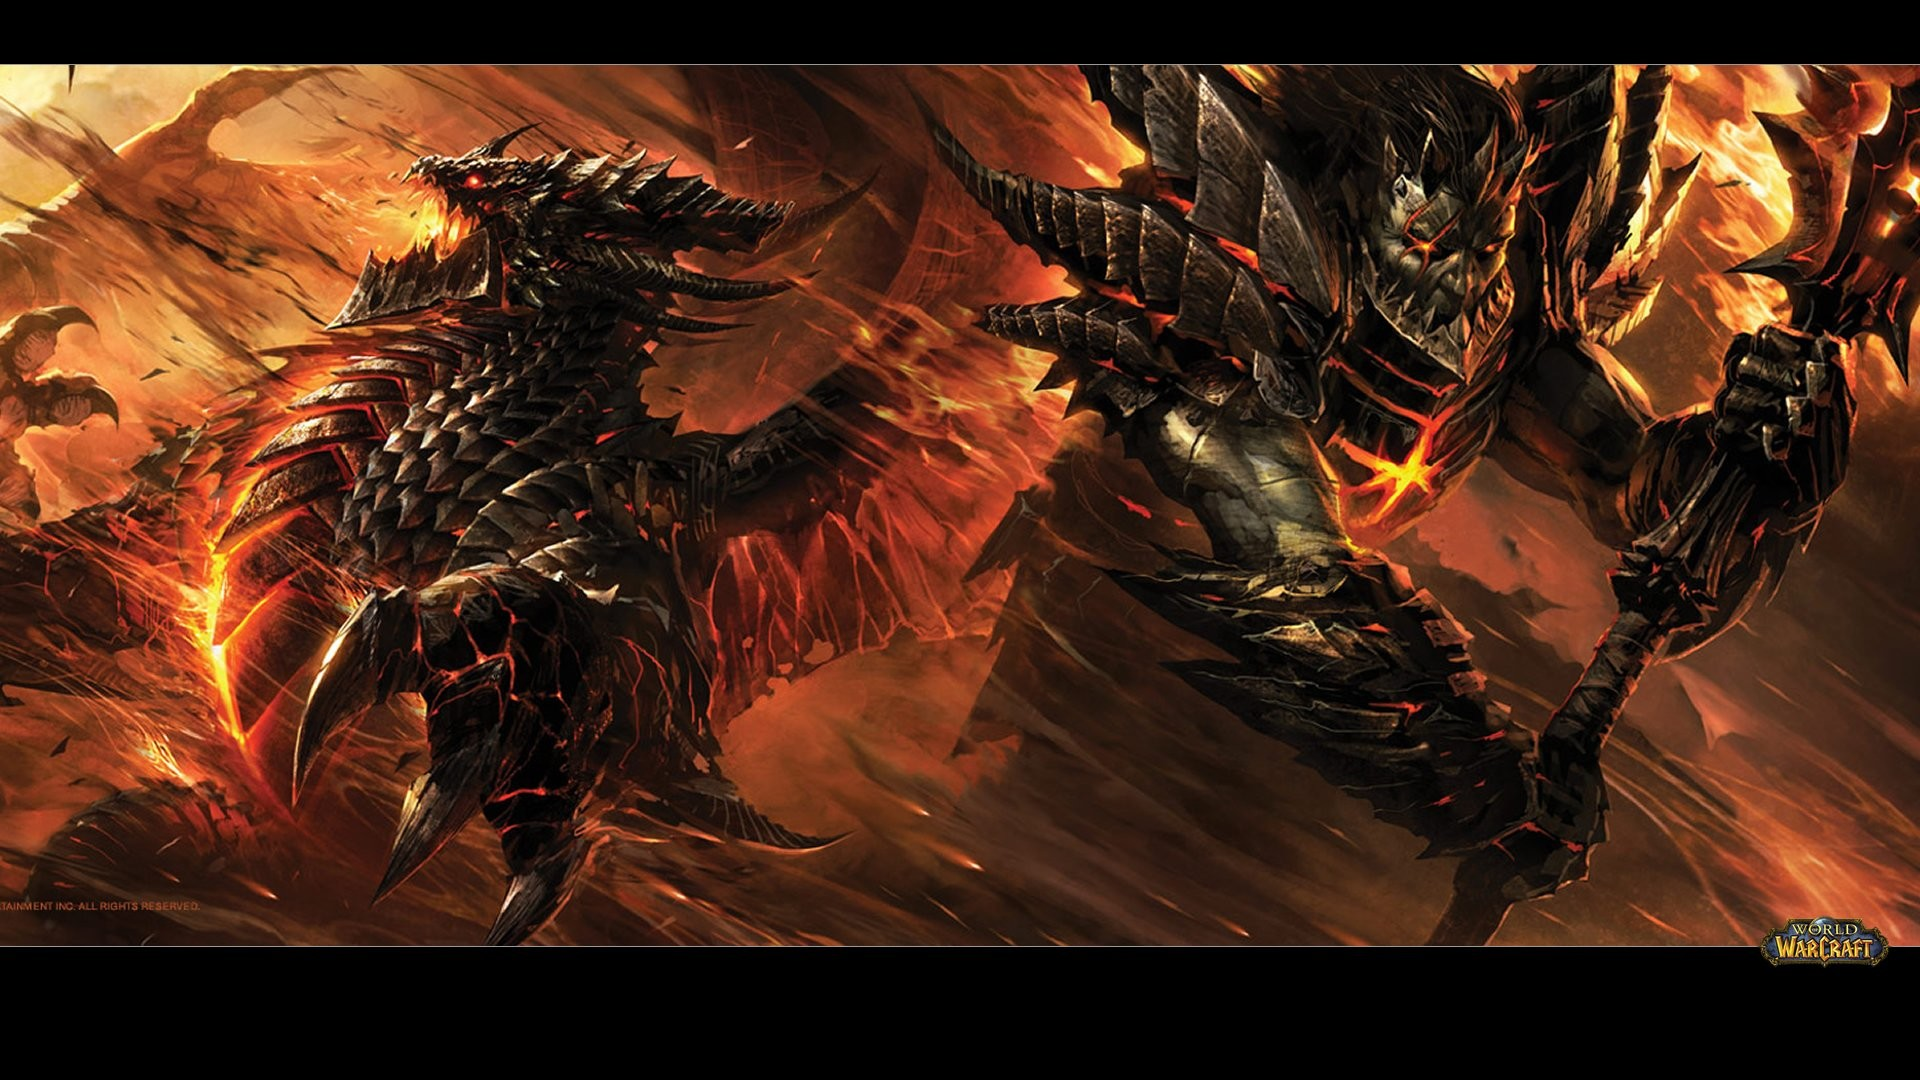 World Of Warcraft Backgrounds 1920x1080: Deathwing Wallpaper (76+ Images